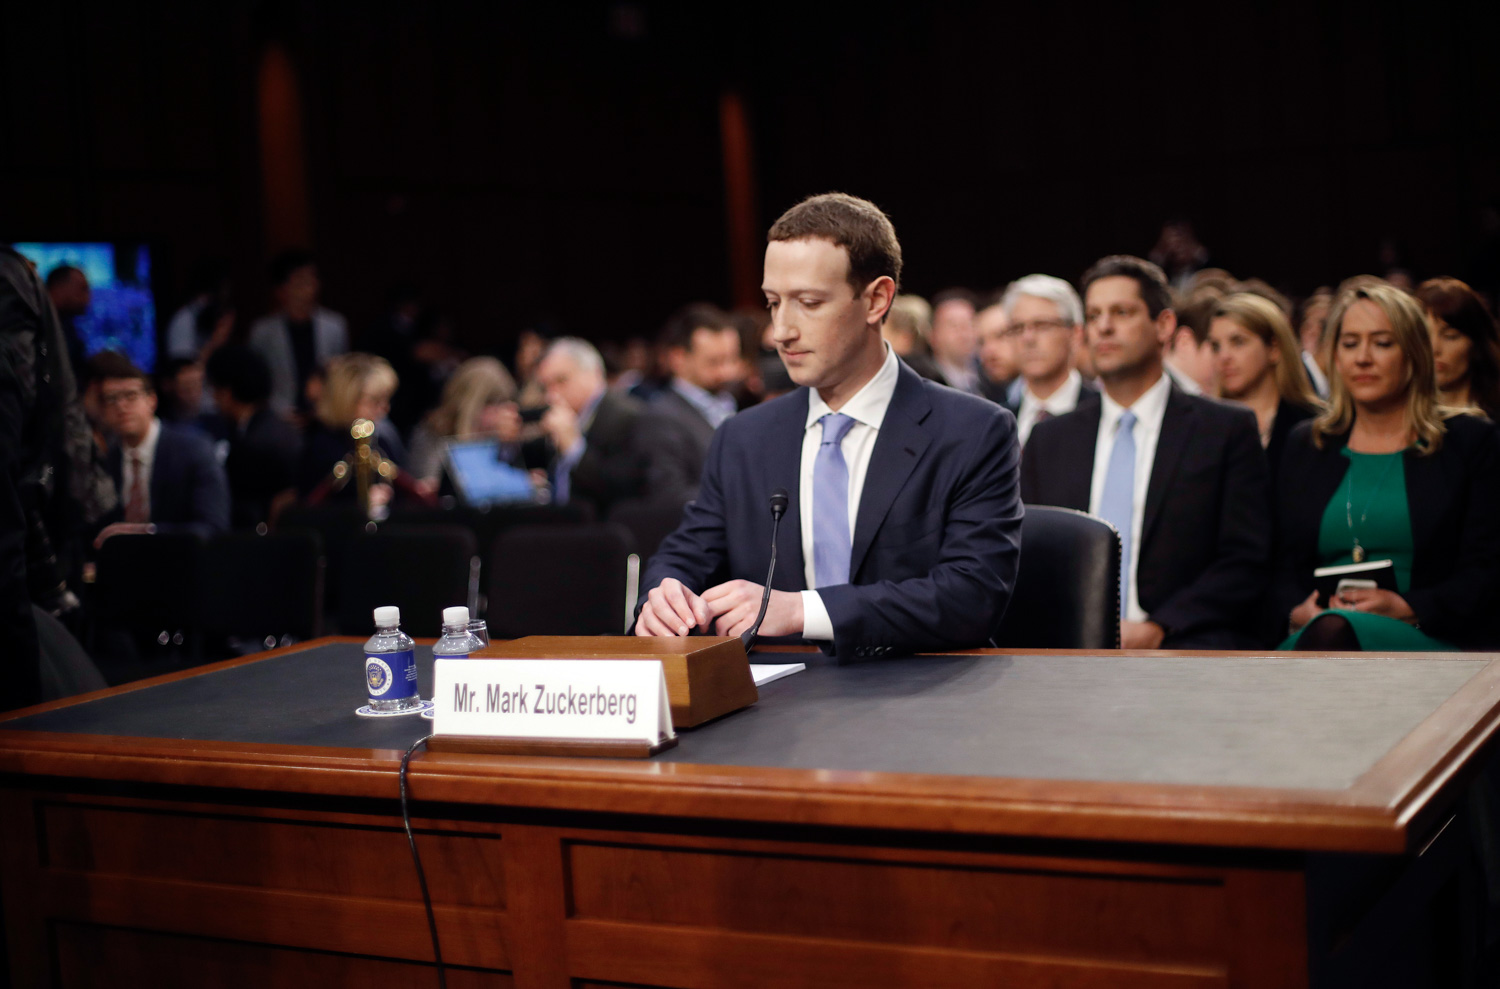 "<div class=""meta image-caption""><div class=""origin-logo origin-image none""><span>none</span></div><span class=""caption-text"">Facebook CEO Mark Zuckerberg arrives to testify before a joint hearing of the Commerce and Judiciary Committees on Capitol Hill in Washington. (Pablo Martinez Monsivais/AP Photo)</span></div>"